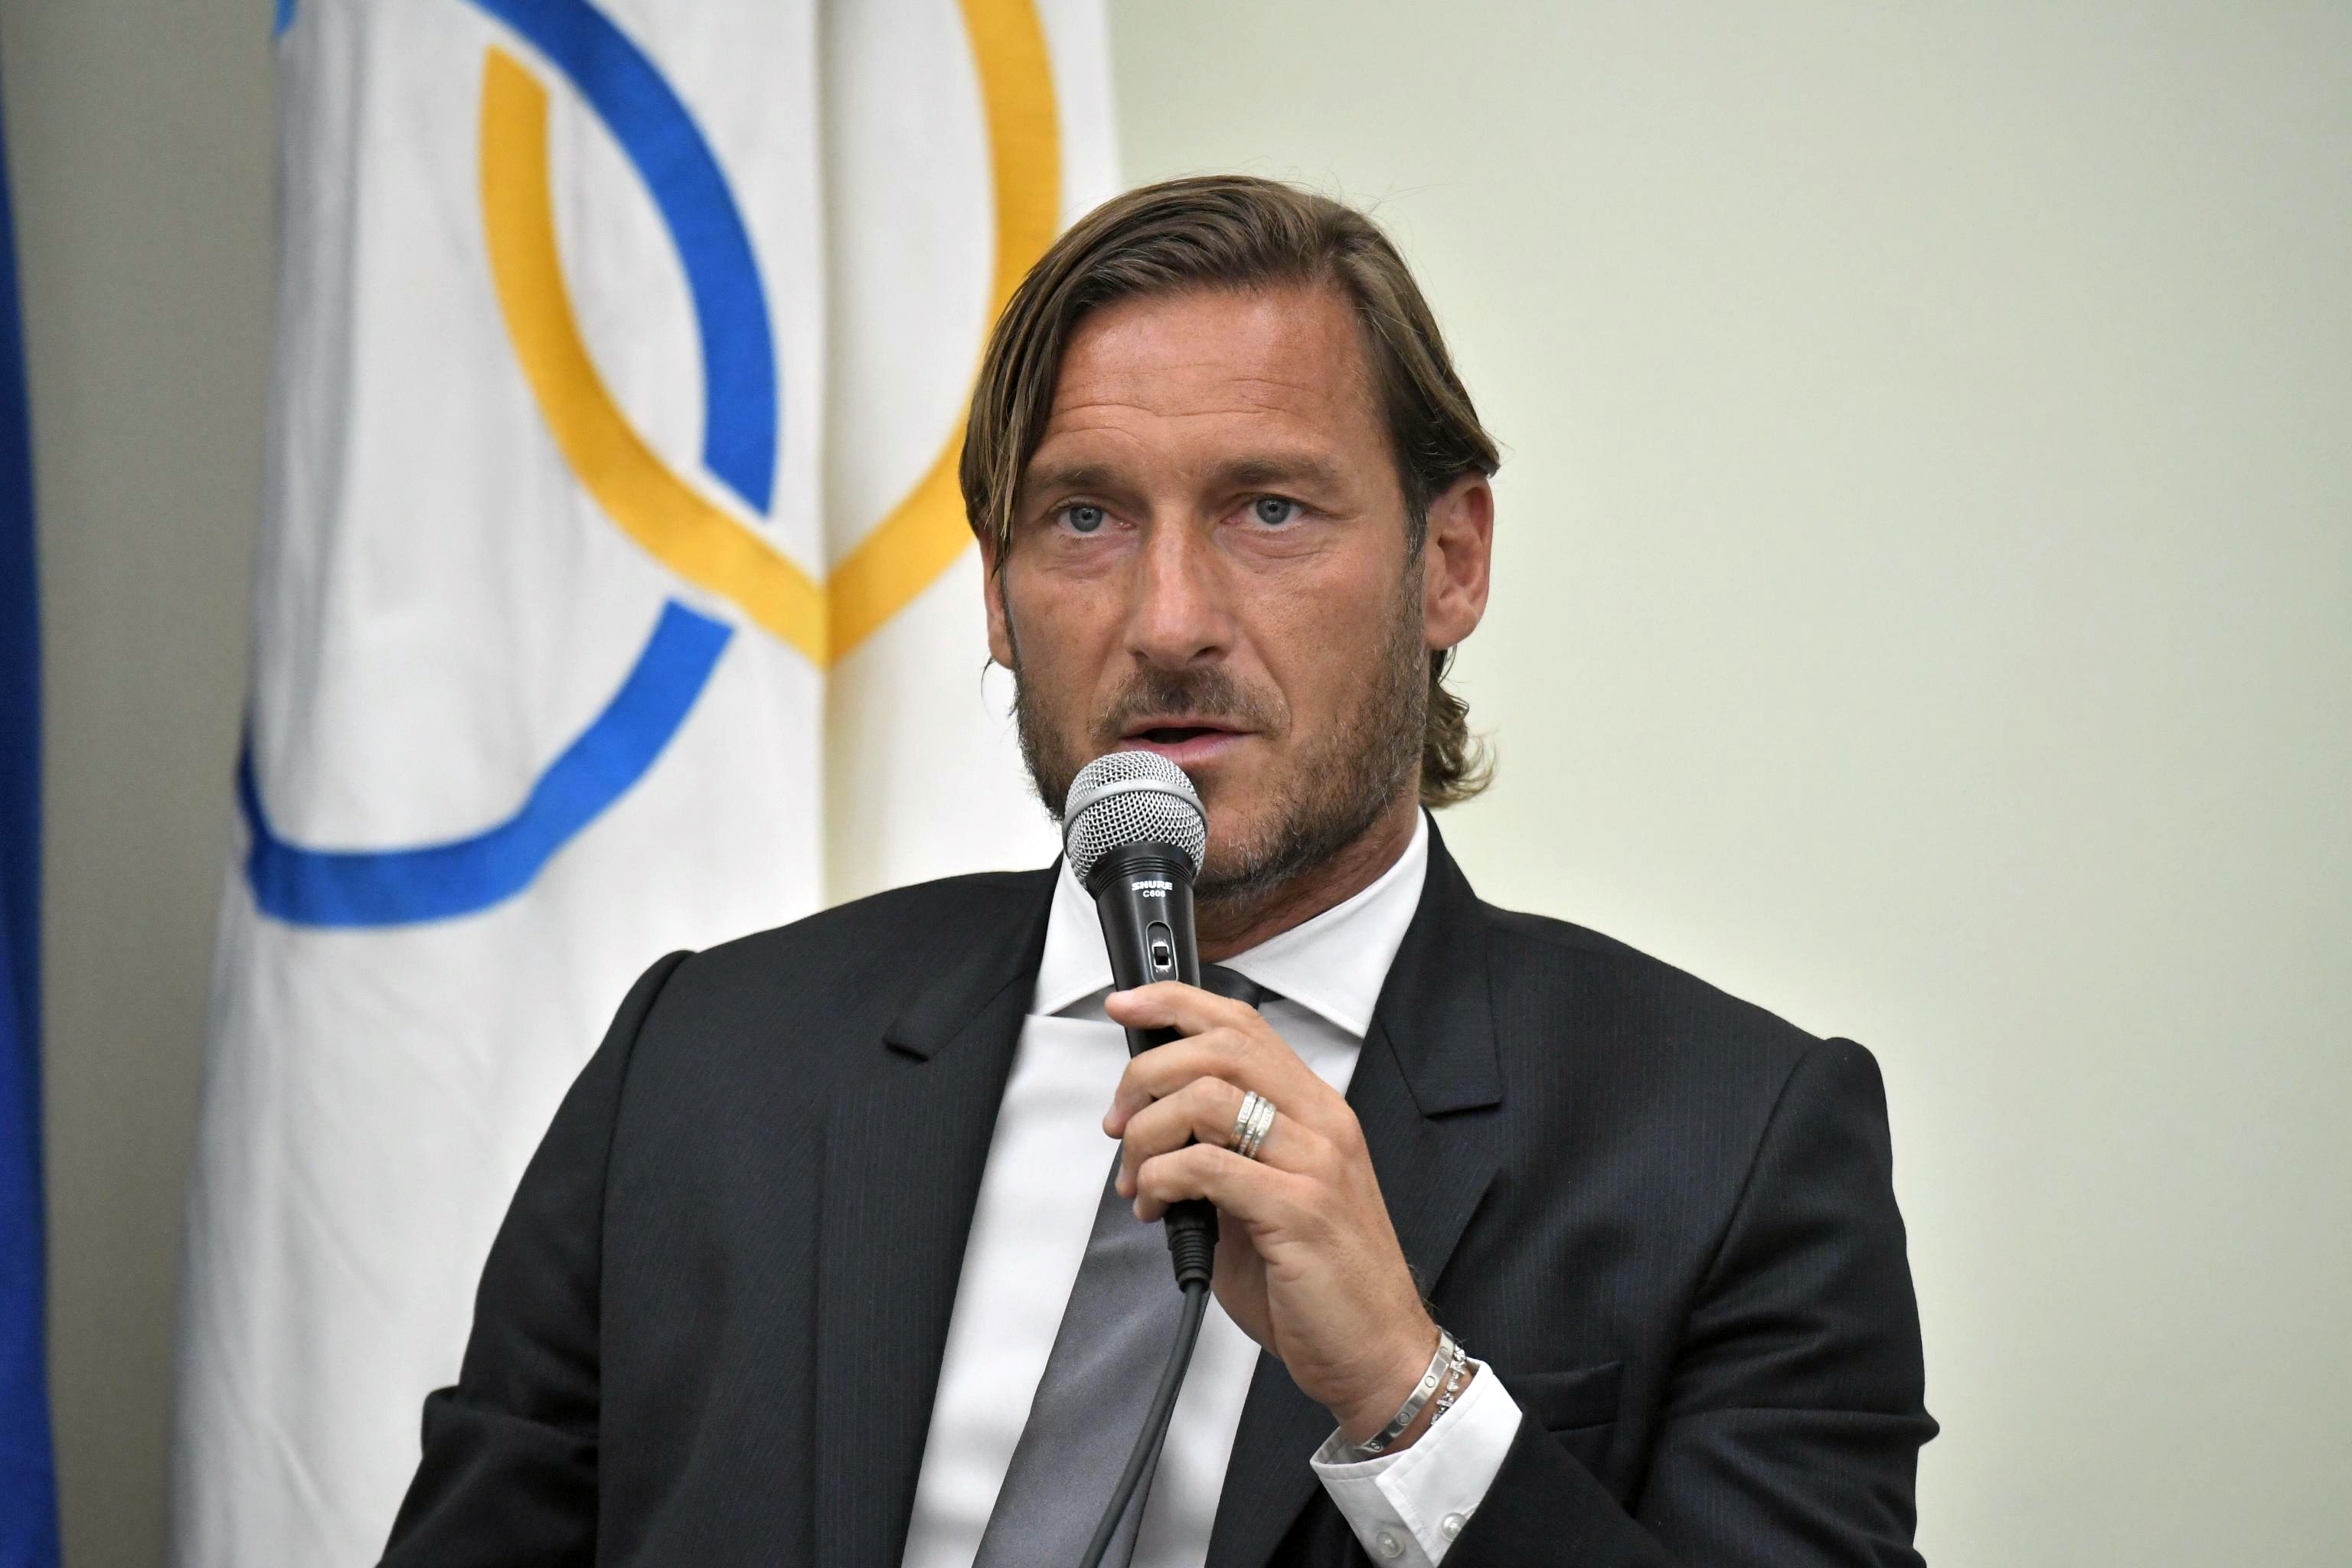 Francesco Totti criticises Roma hierarchy after ending 30-year stay with club